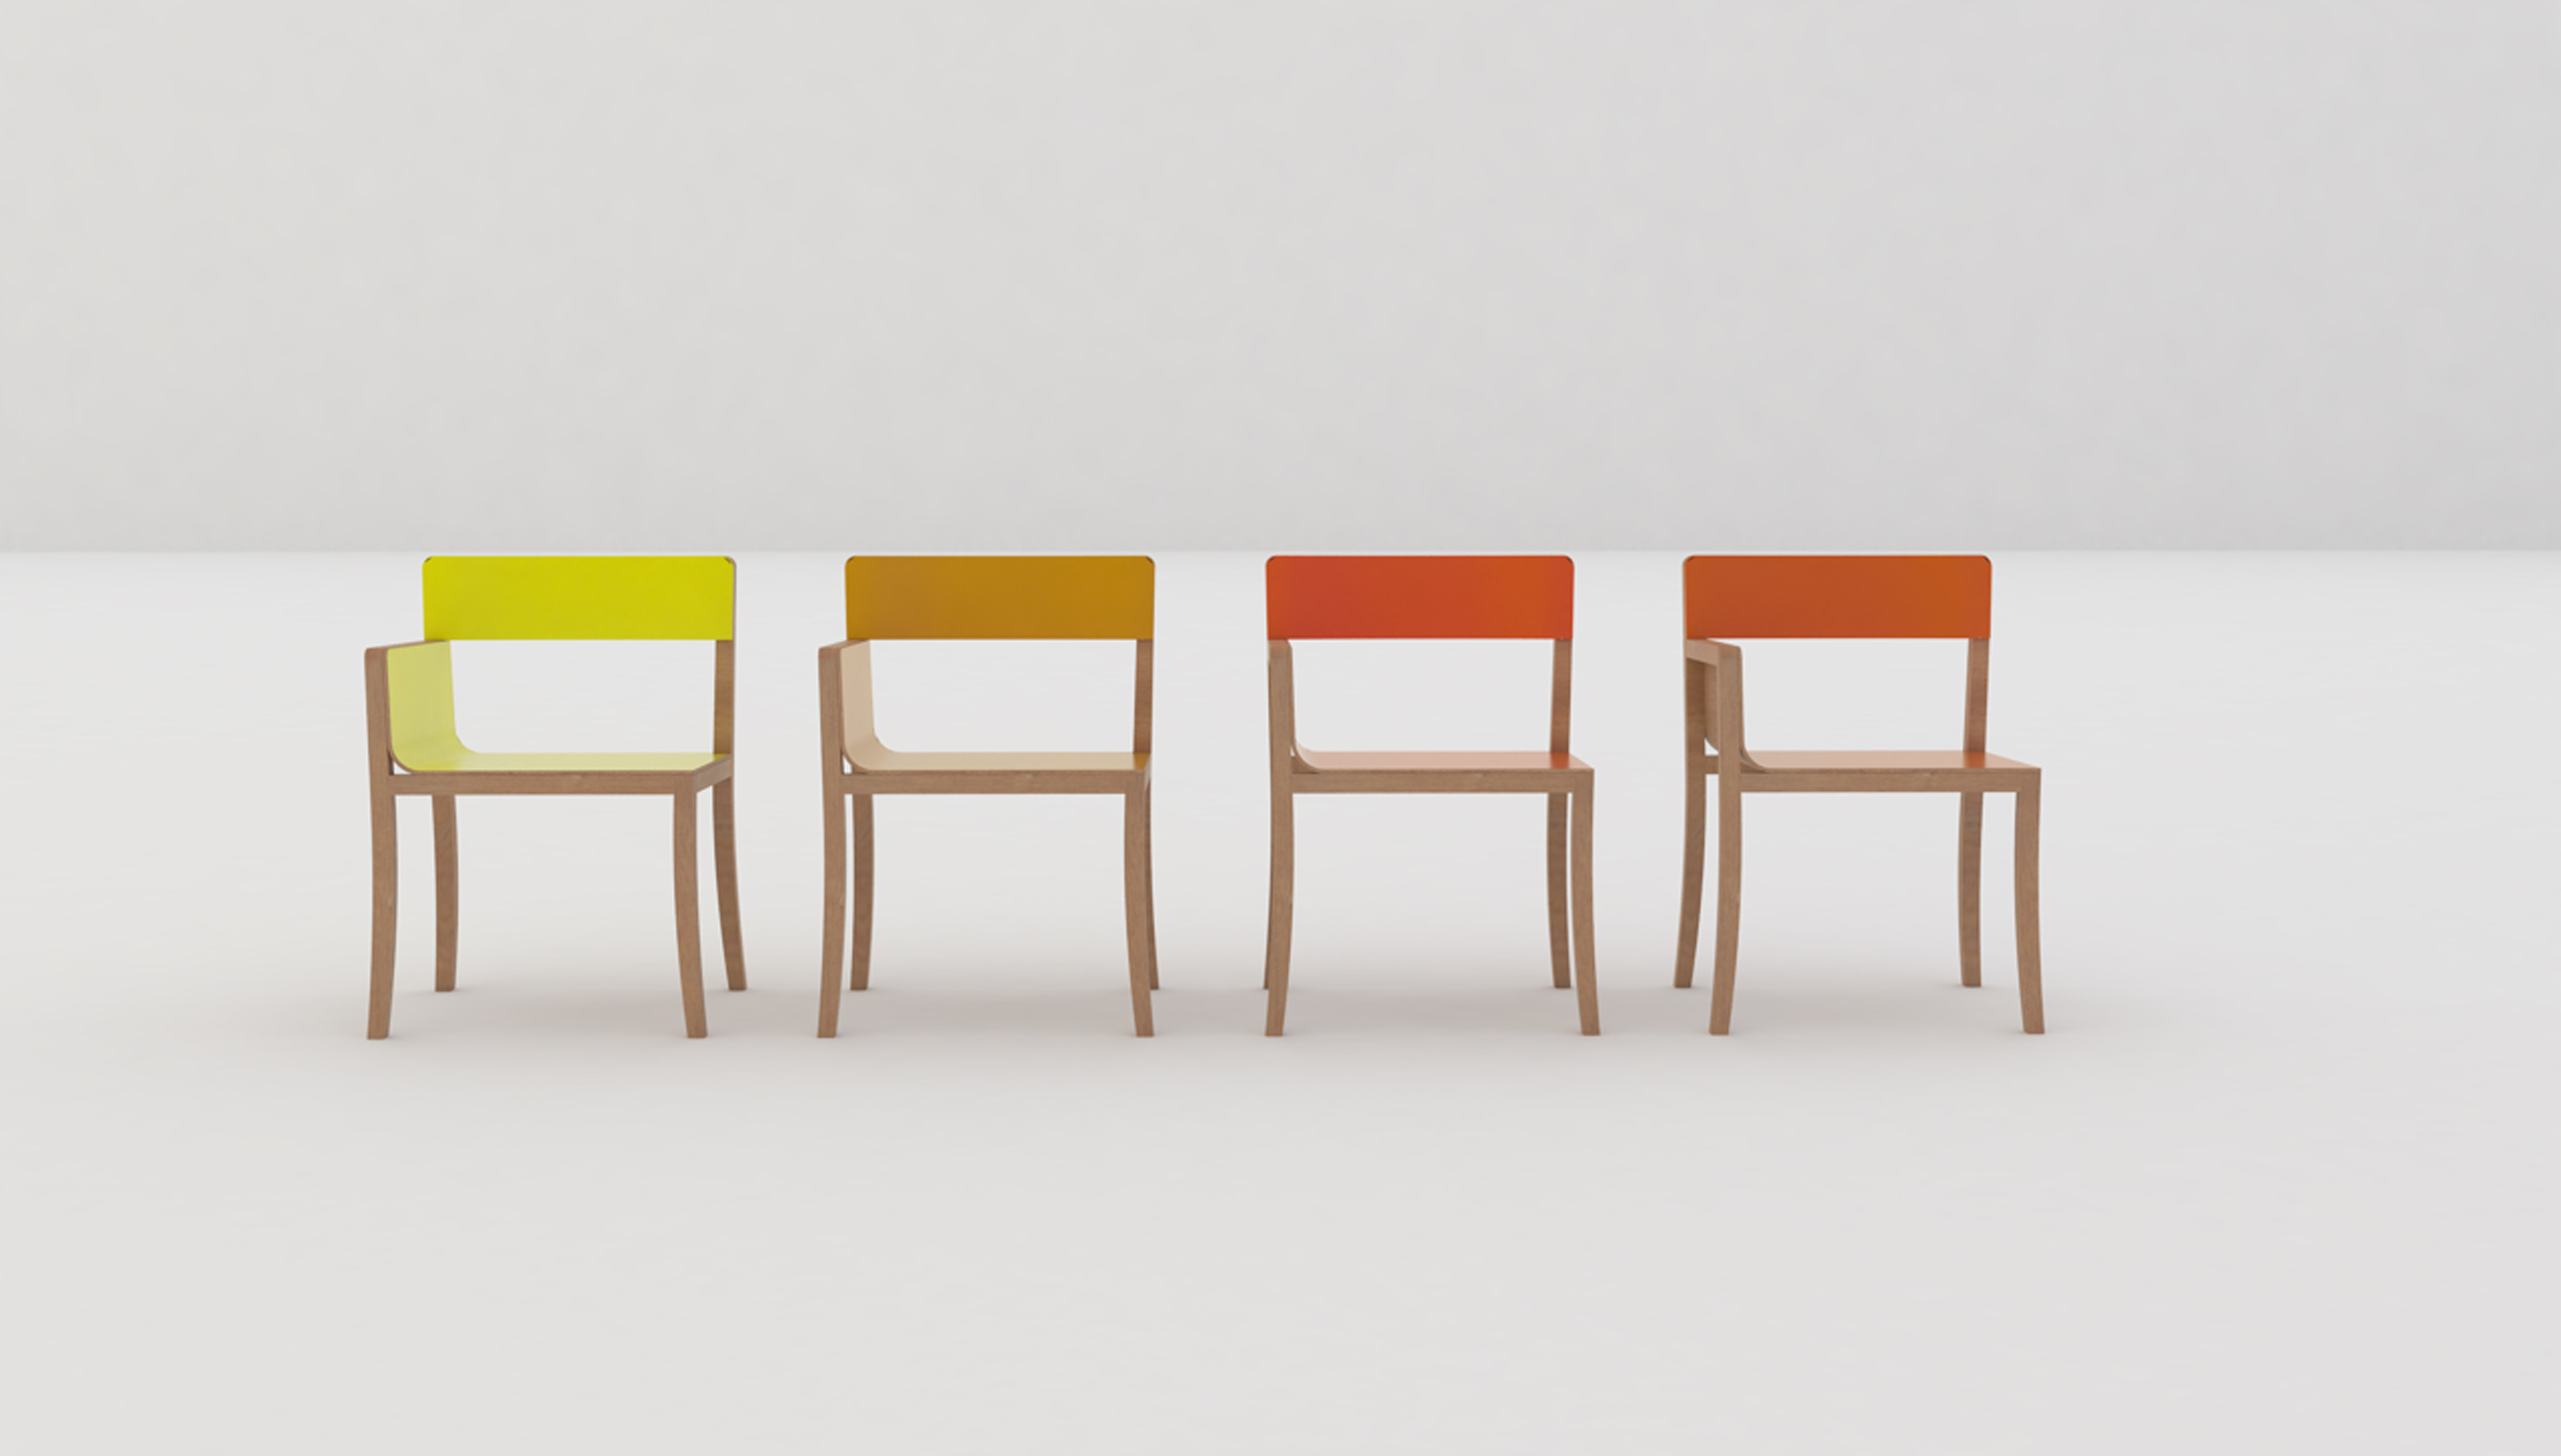 li-lith Chairs by Gregor Eichinger for rosconi